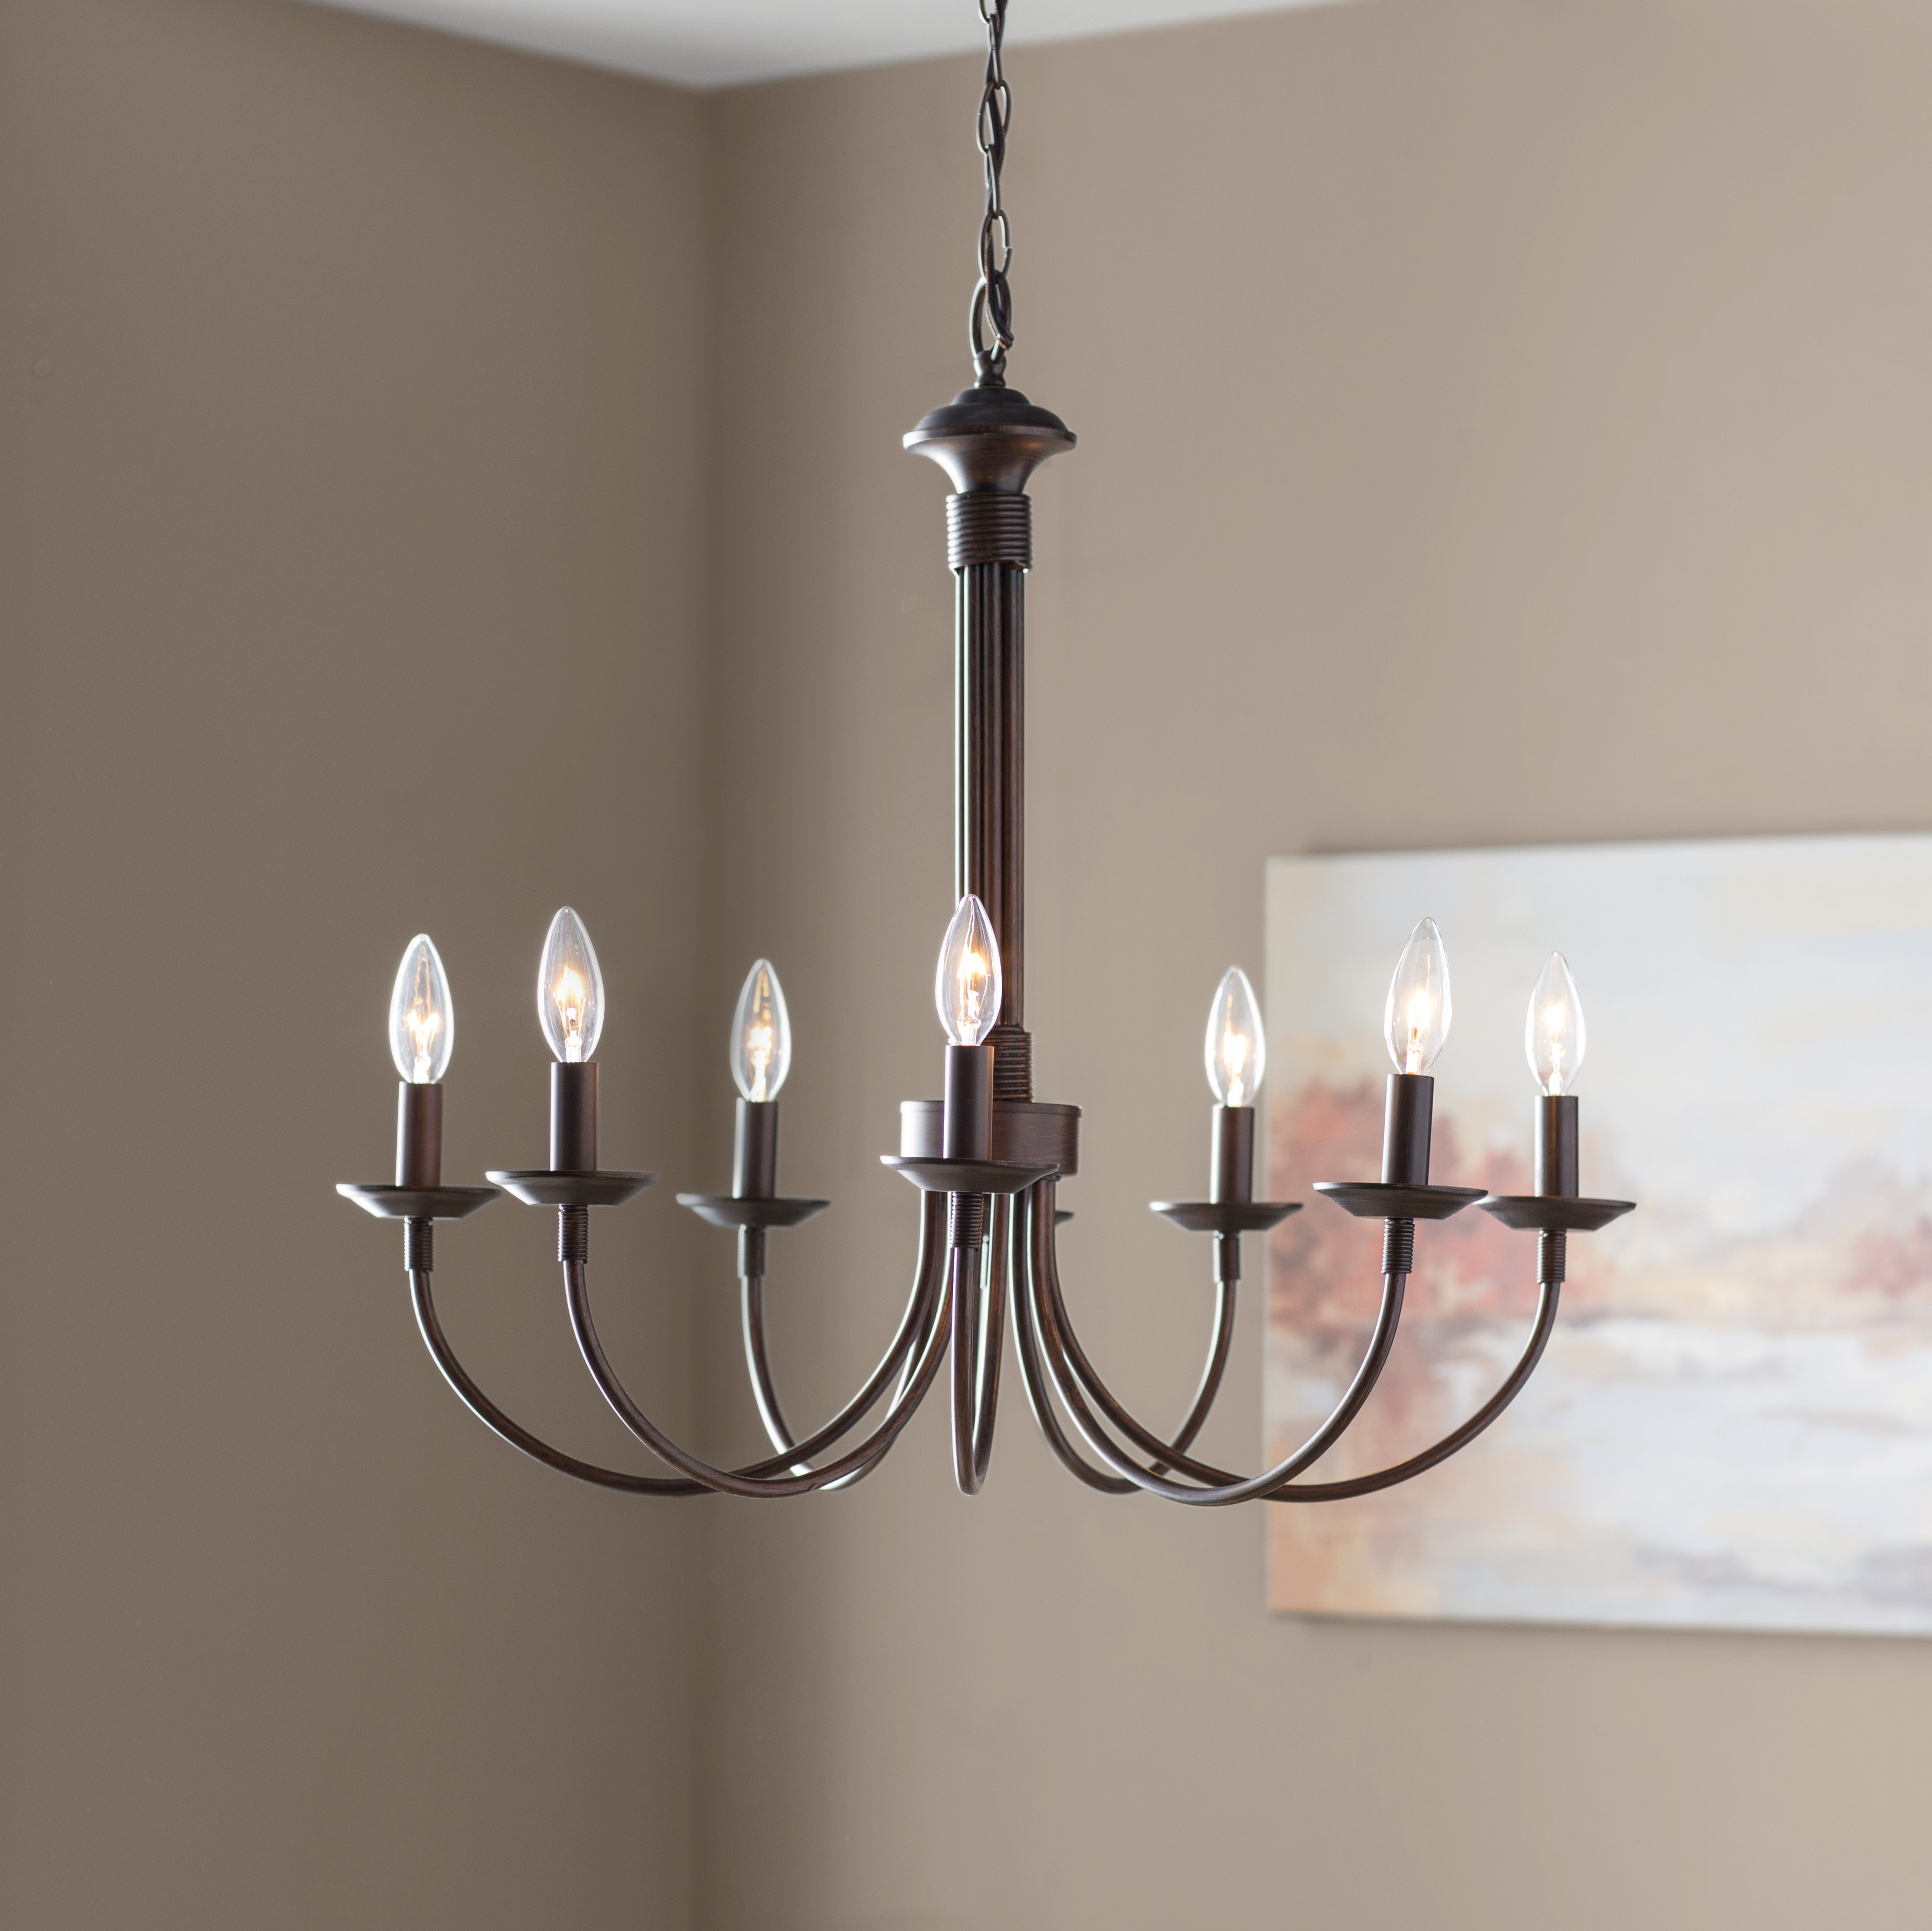 Laurel Foundry Modern Farmhouse Shaylee 8 Light Candle Style Chandelier In Annuziata 3 Light Unique/statement Chandeliers (Image 19 of 30)